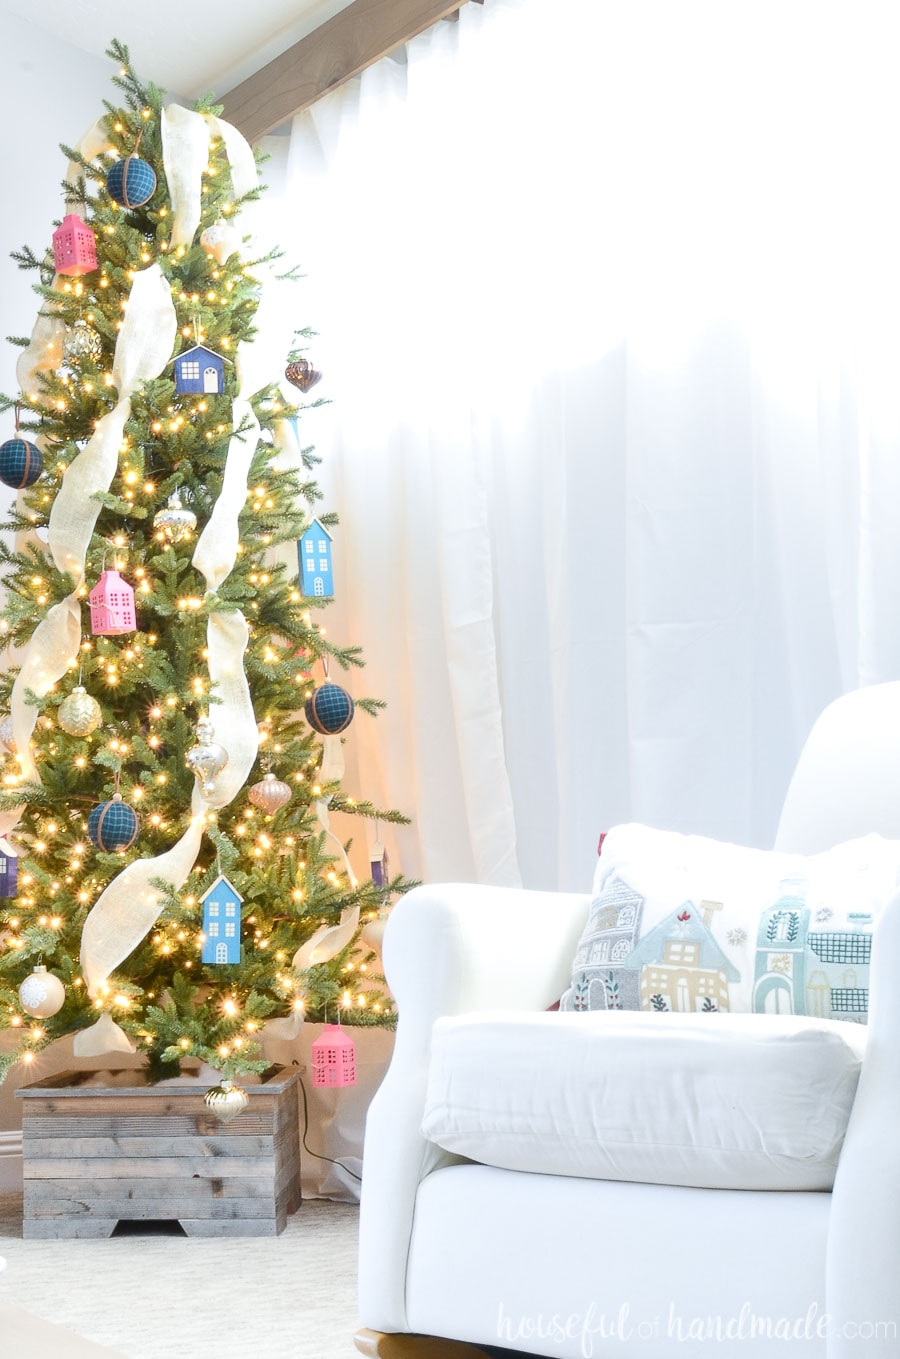 Chair in the foreground and Christmas tree in the background decorated with color full ornaments include the wood Christmas houses made from scrap wood.